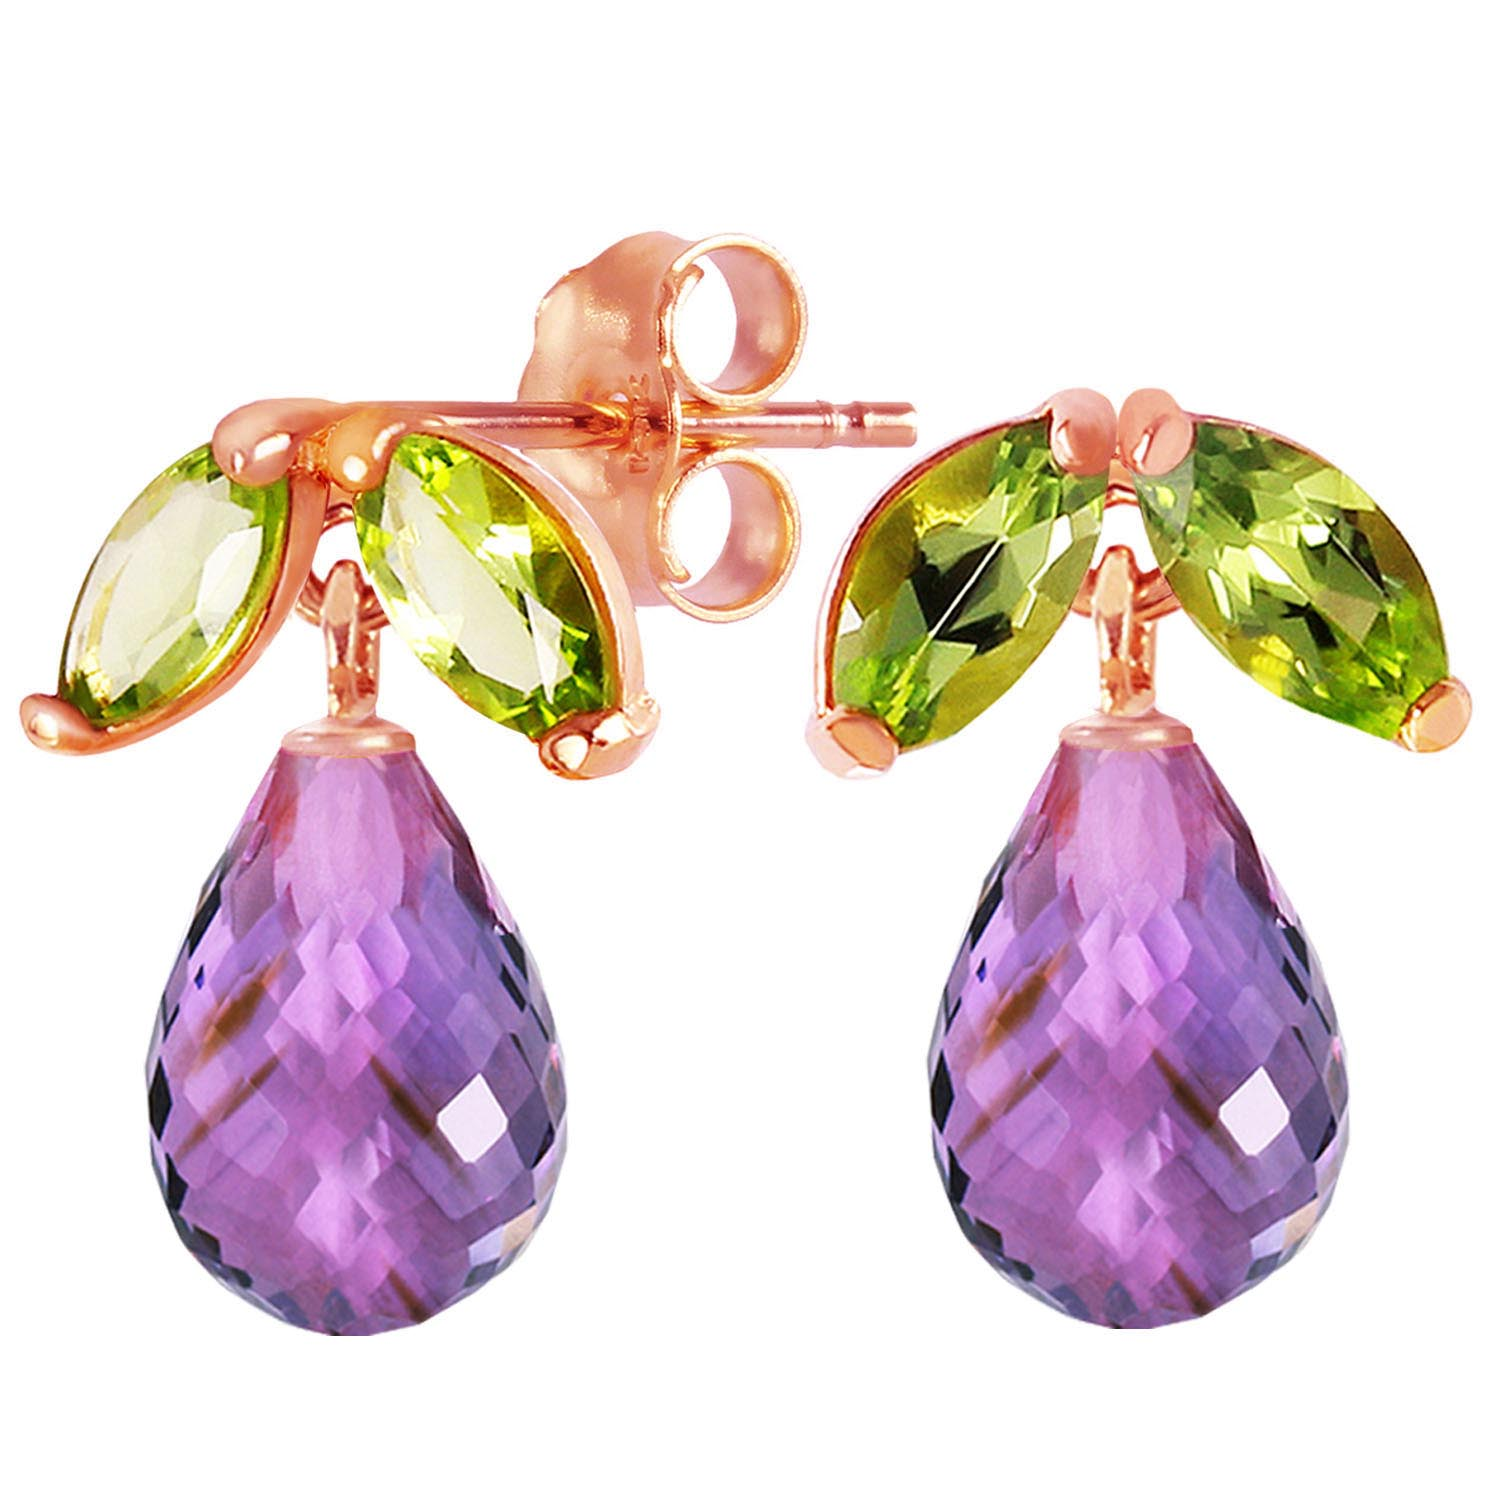 Amethyst & Peridot Snowdrop Stud Earrings in 9ct Rose Gold